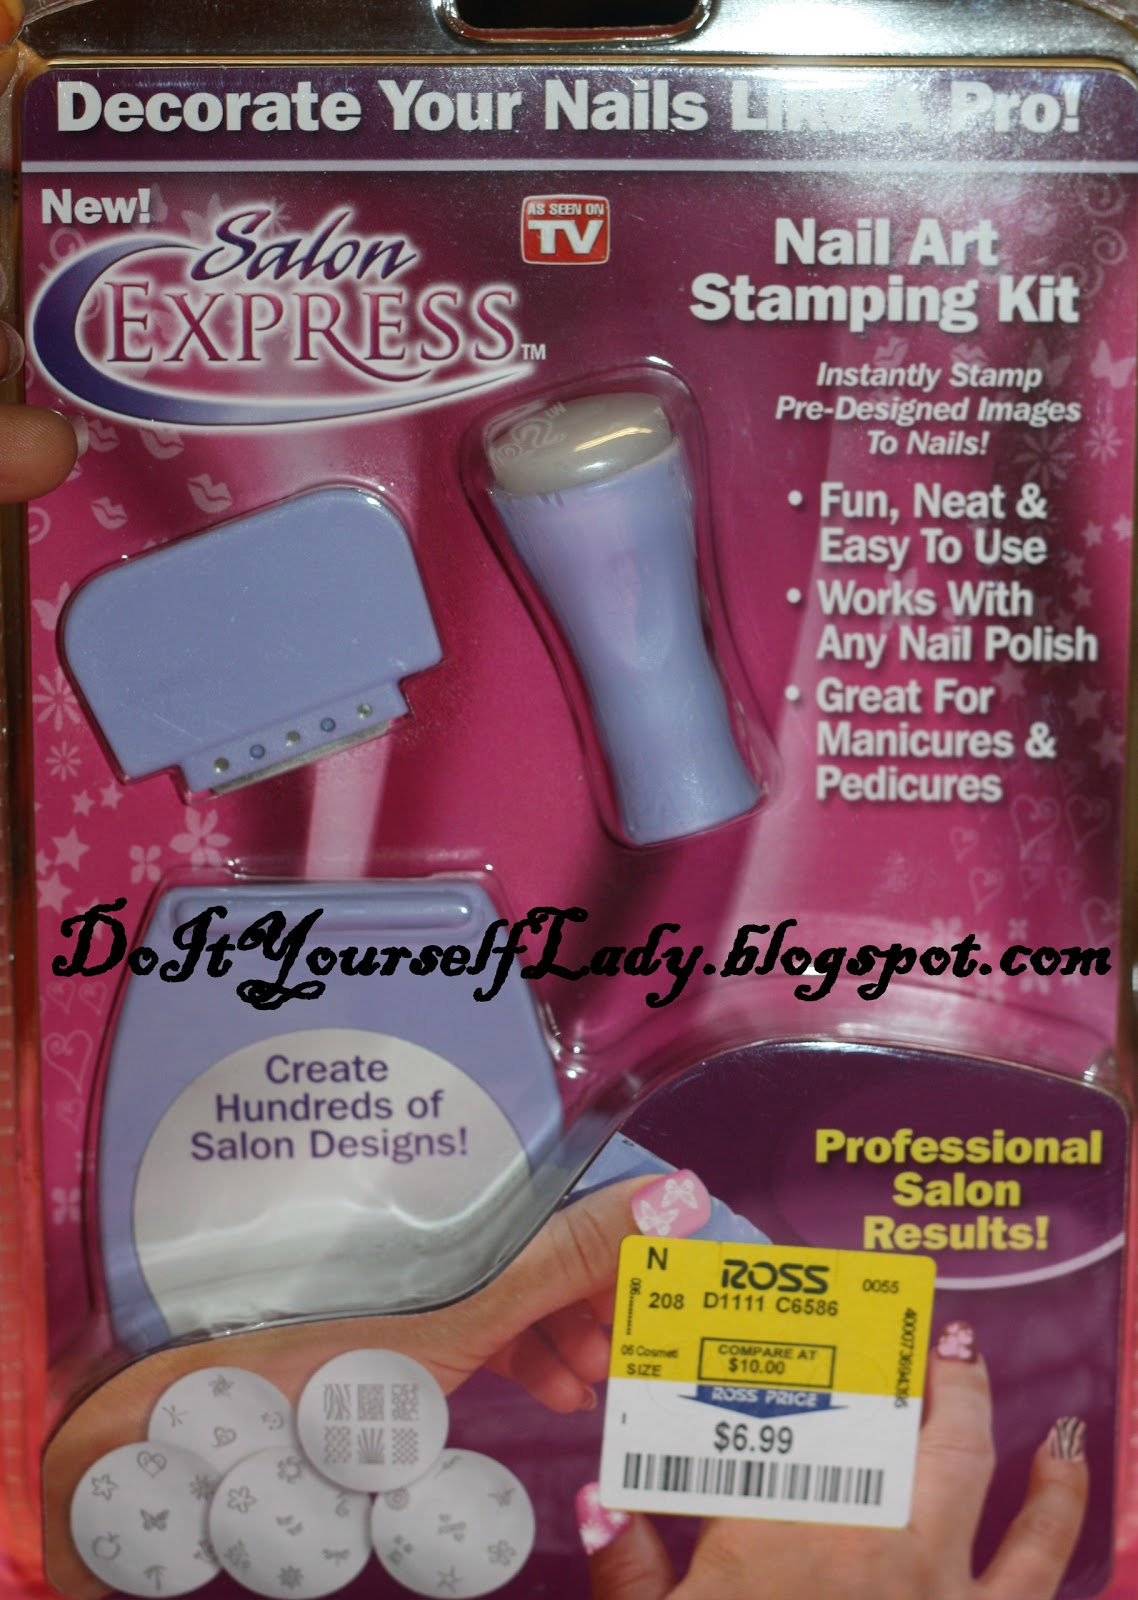 The Do It Yourself Lady Review Salon Express Nail Art Stamping Kit